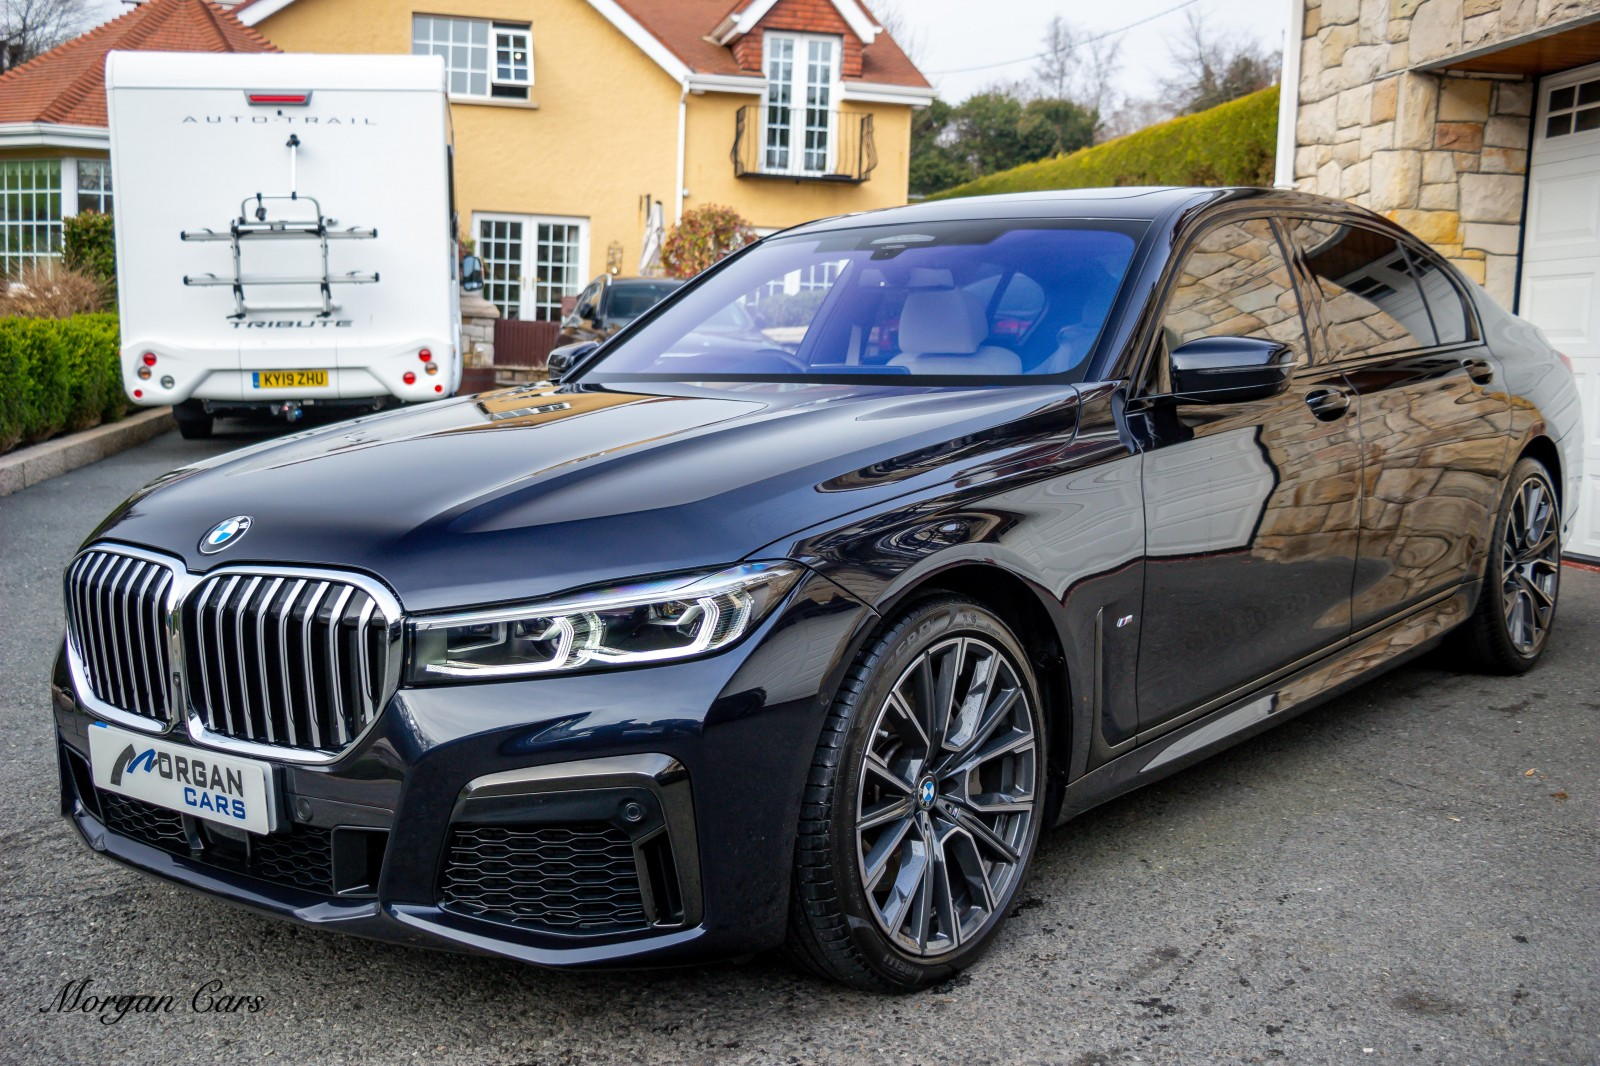 2020 BMW 7 Series 740LD XDRIVE M SPORT Diesel Automatic – Morgan Cars 9 Mound Road, Warrenpoint, Newry BT34 3LW, UK full